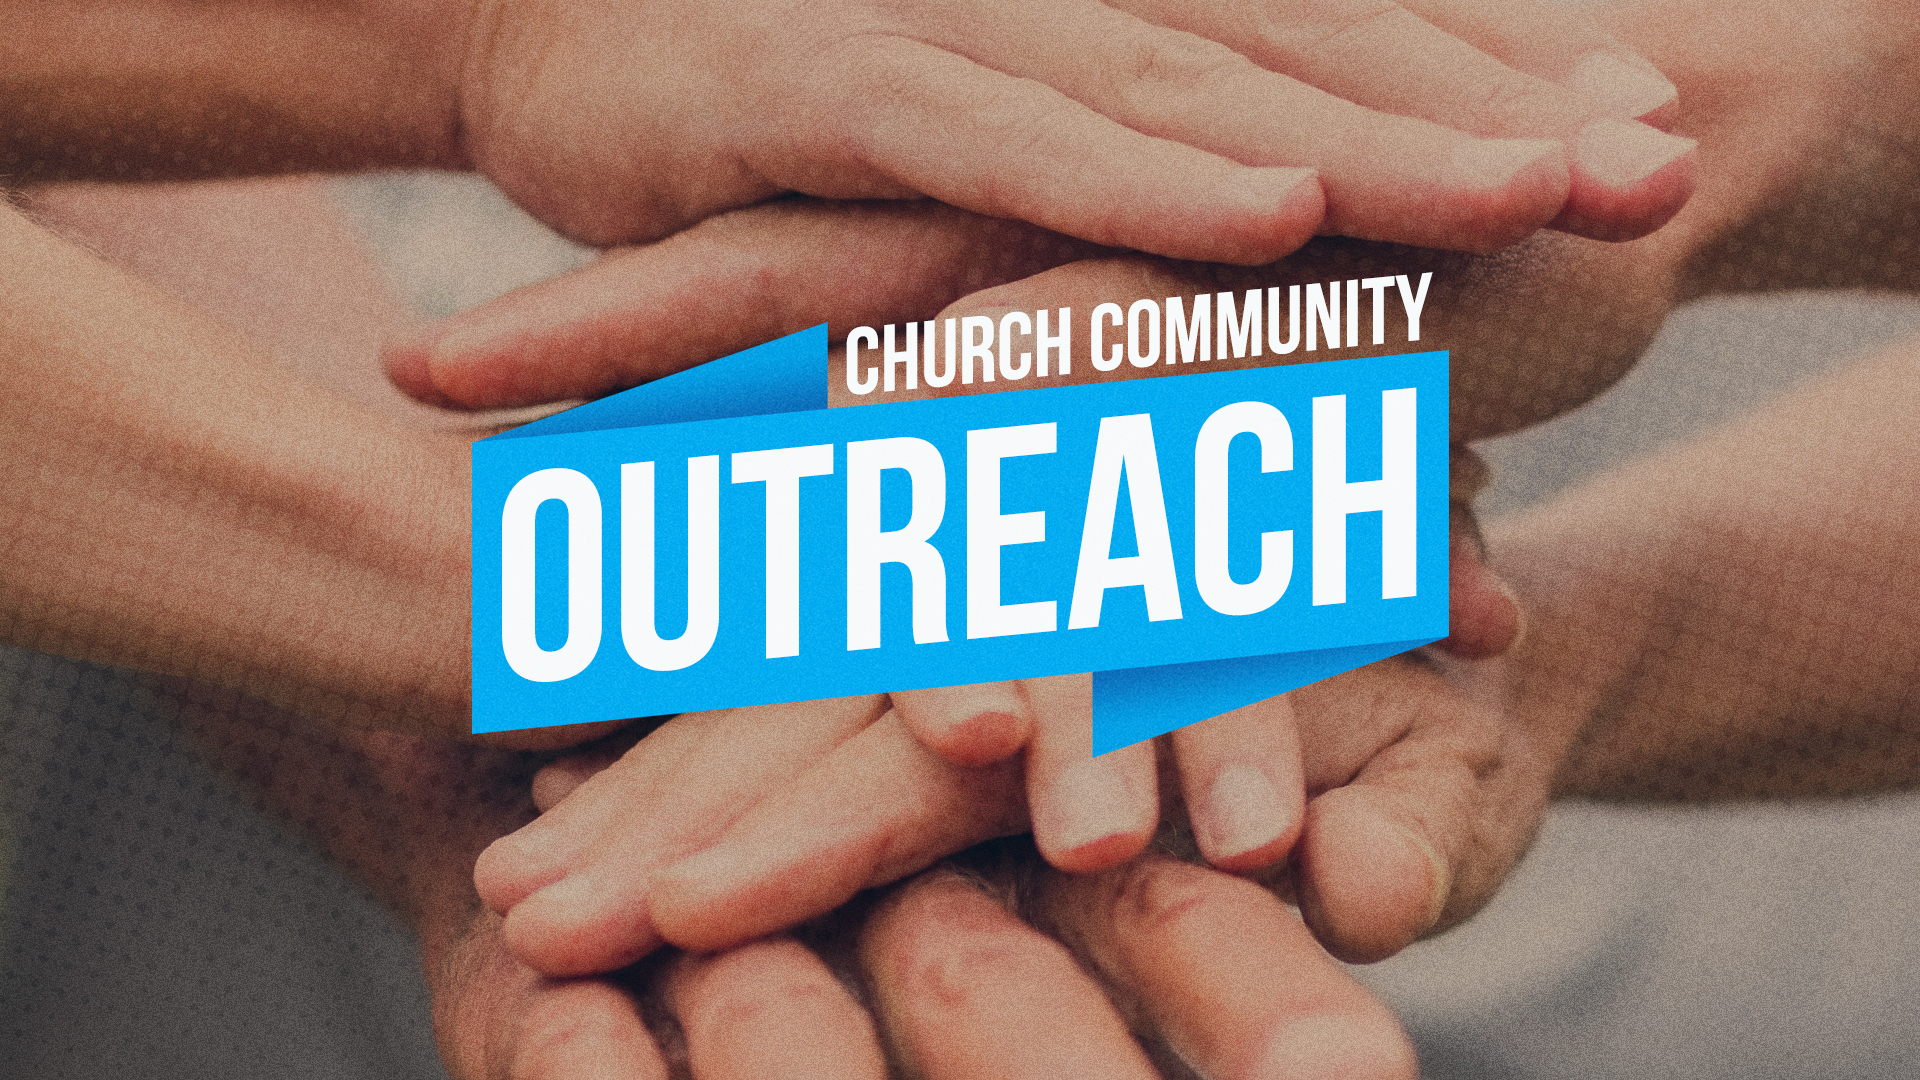 Community Outreach Hands Together-Title.jpg